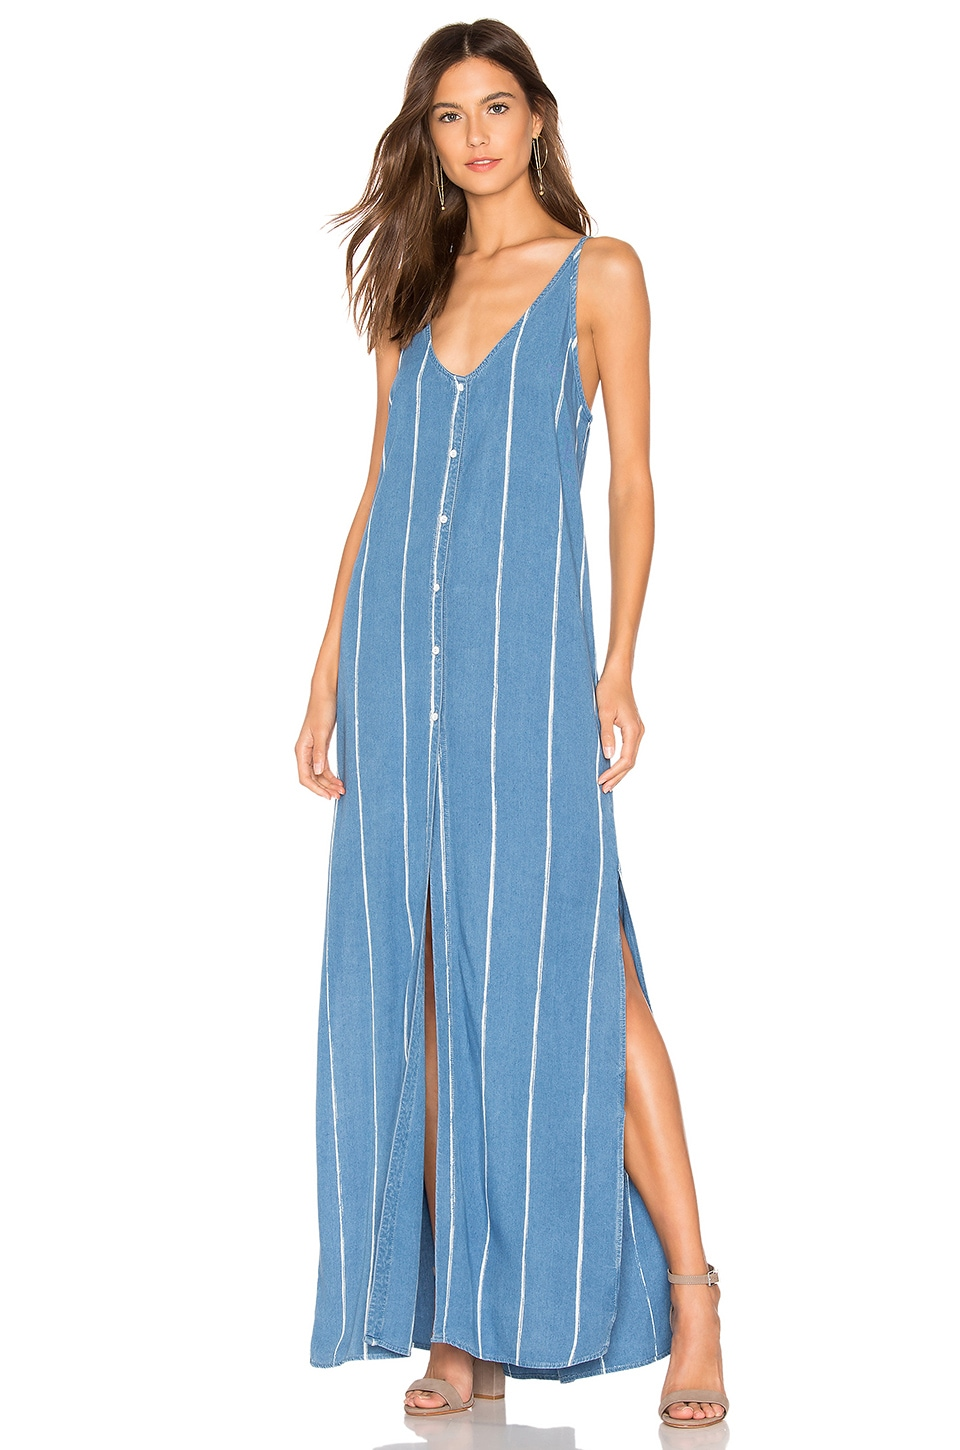 Bella Dahl Pleat Back Maxi Dress in Escondido Falls Wash